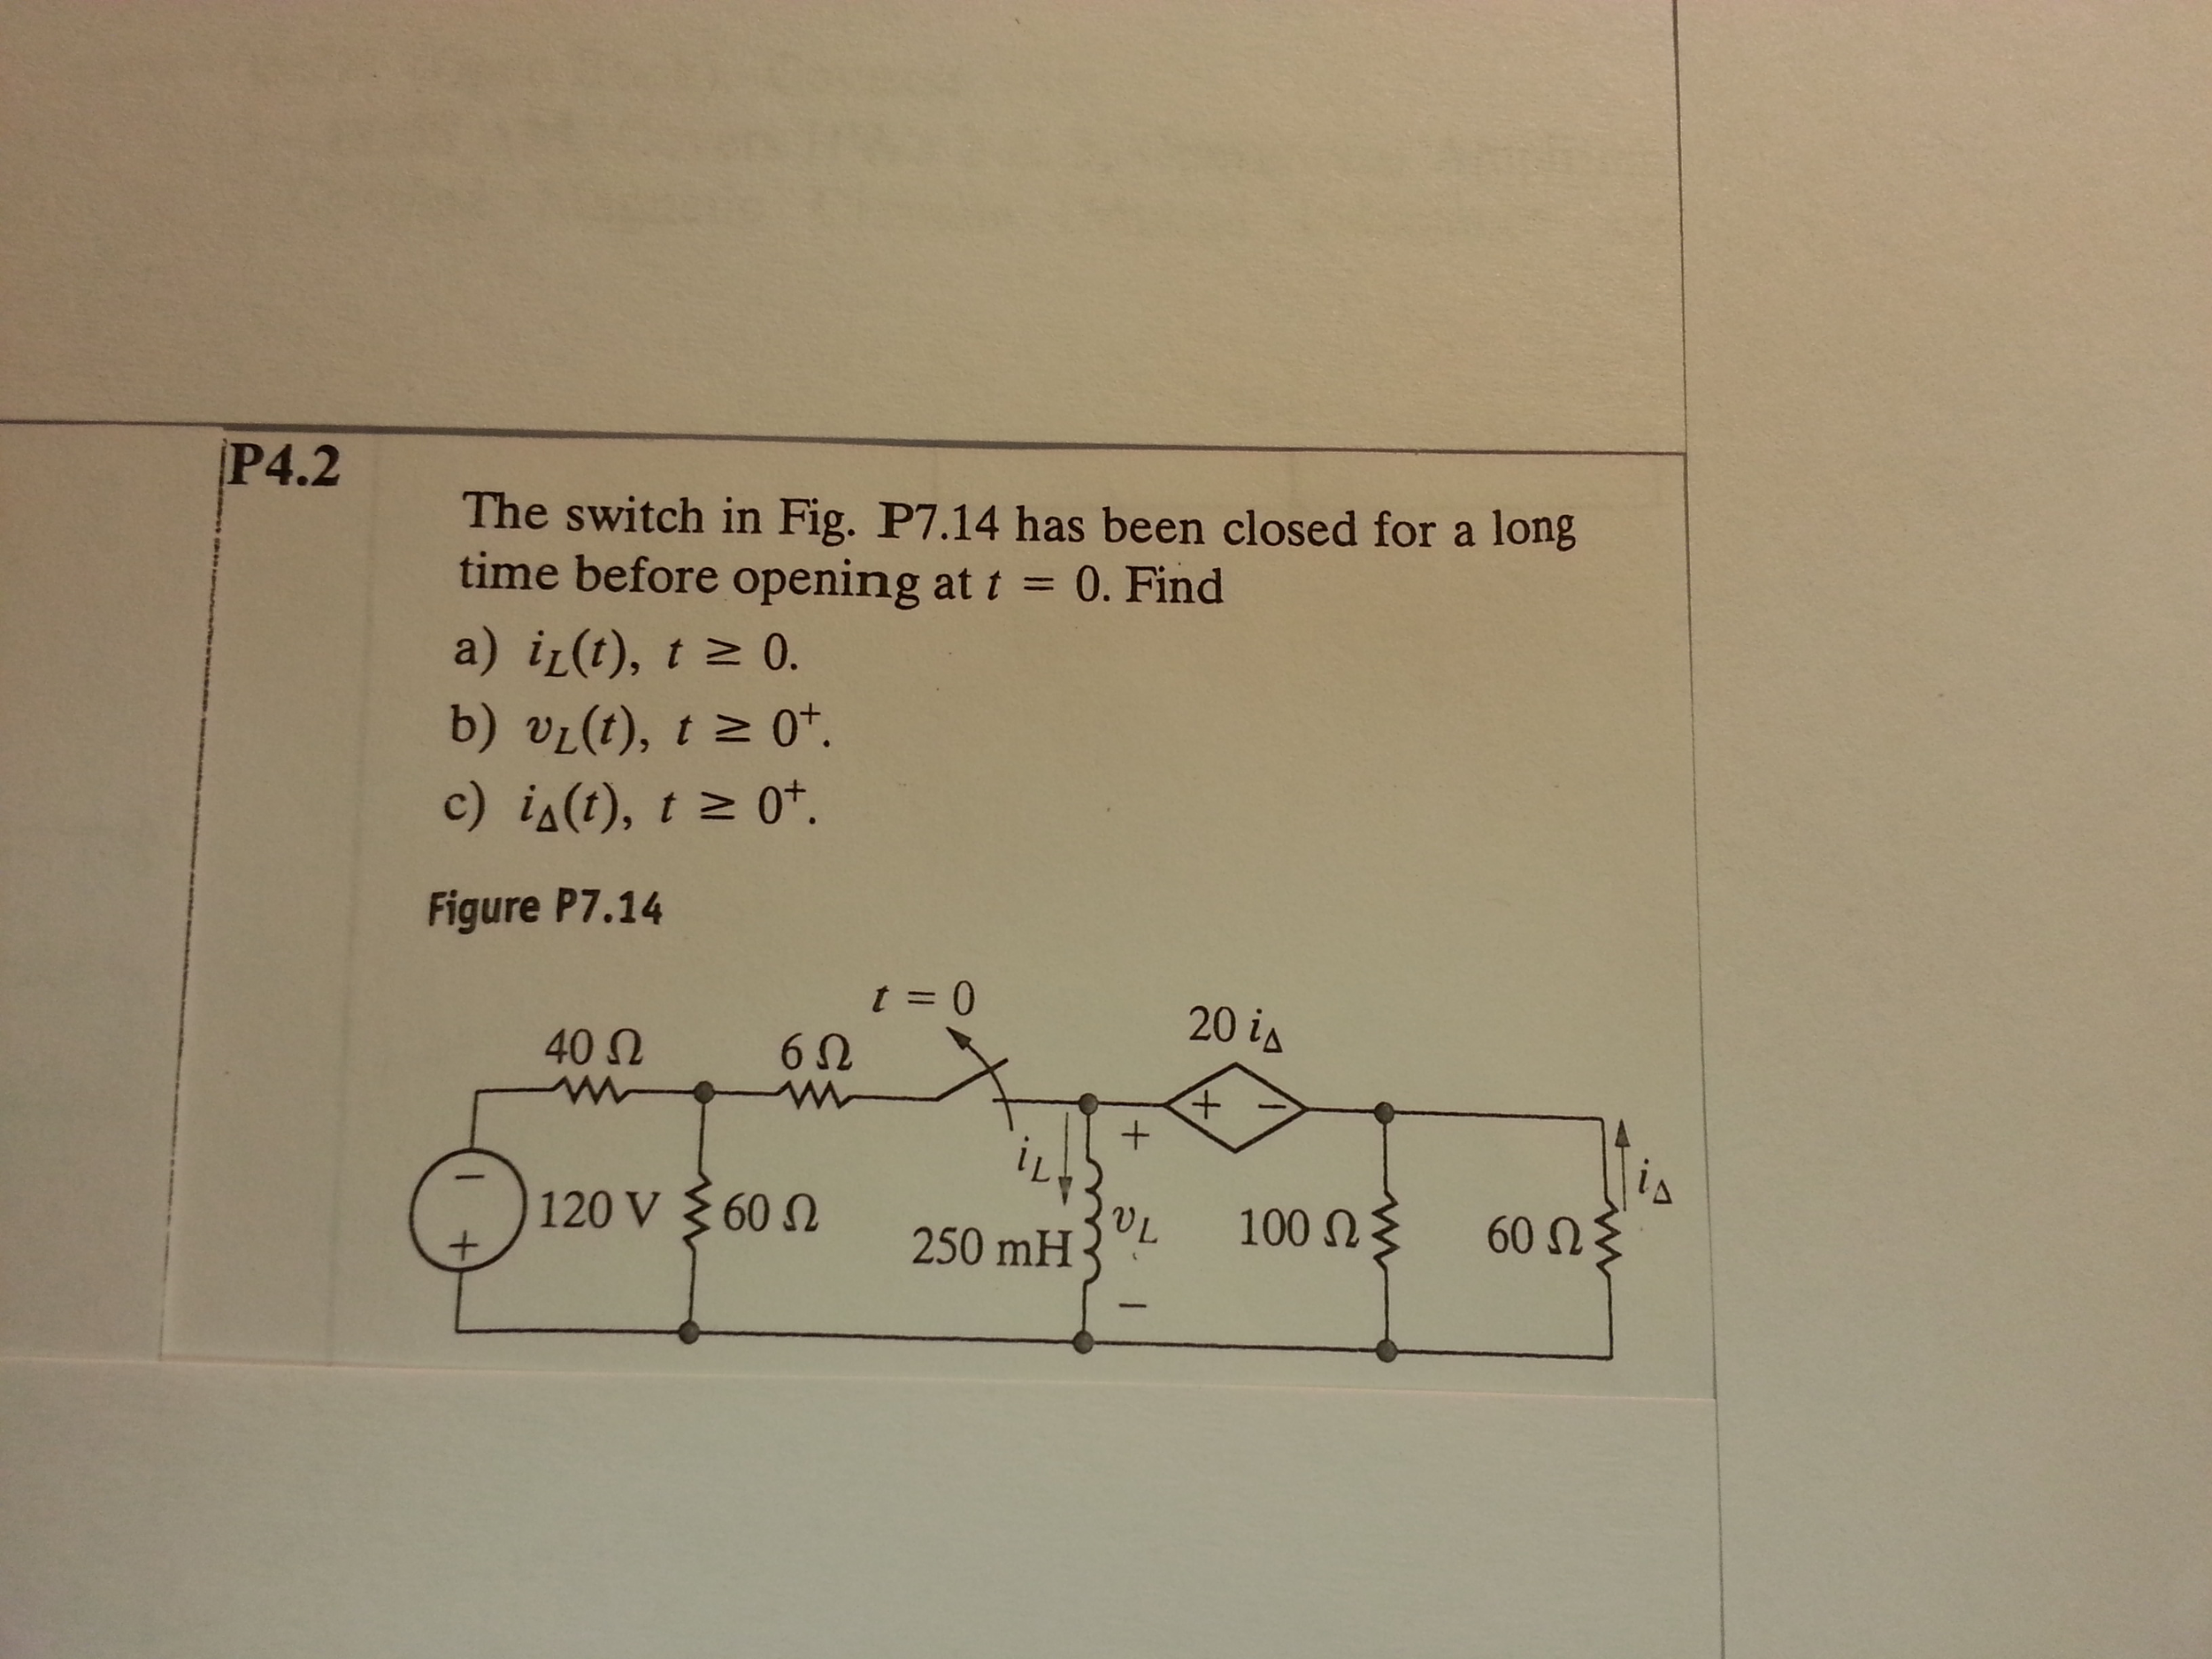 The switch in Fig. P7.14 has been closed for a lon